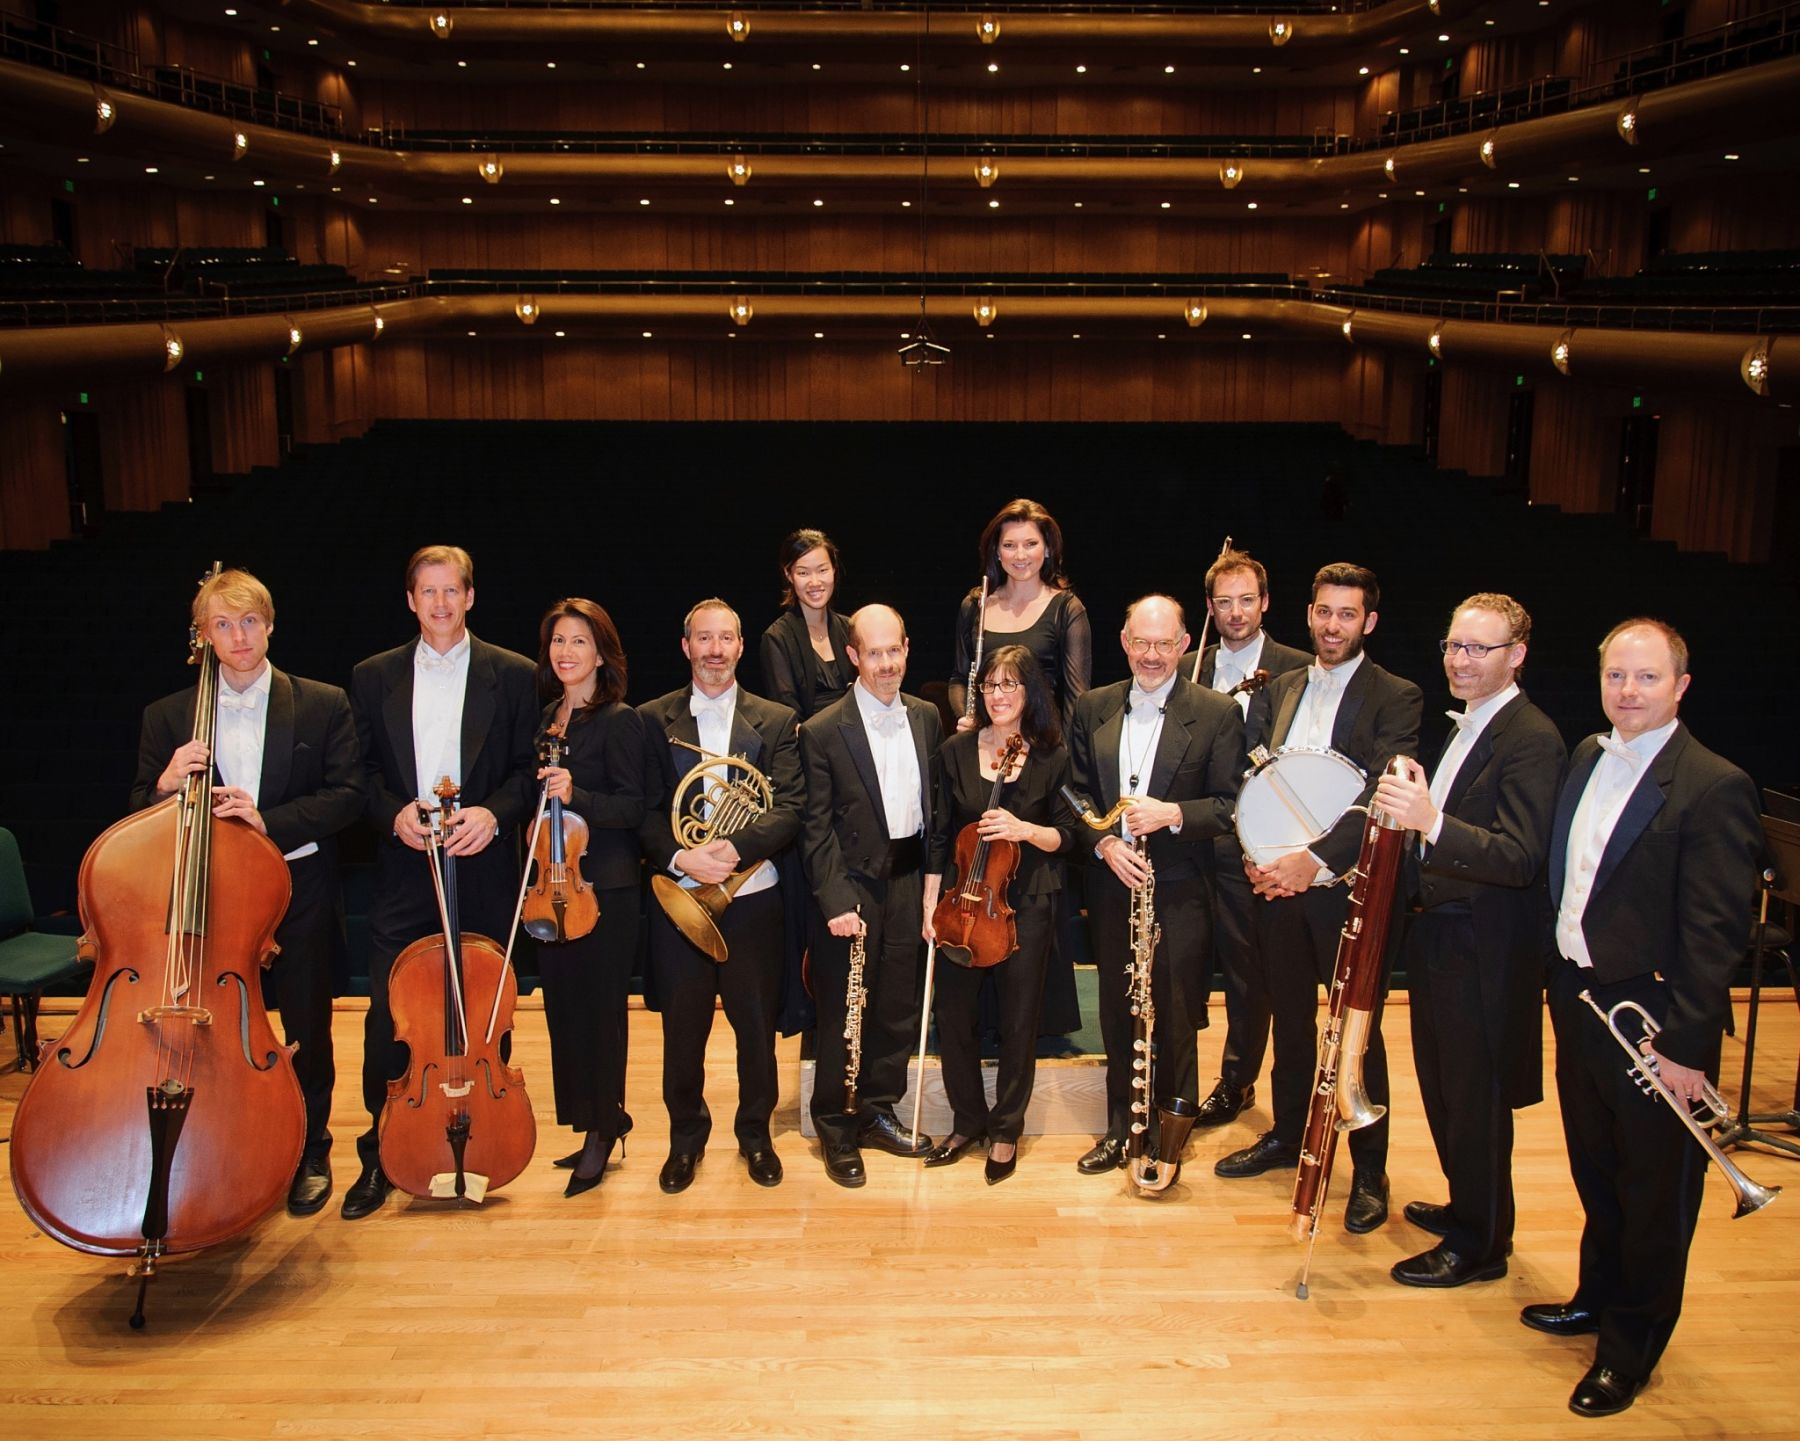 Jens Tenbroek, bass; John Eckstein, cello; Yuki MacQueen, violin; Stephen Proser, horn; Anne Lee, cello; James Hall, oboe; Roberta Zalkind, viola; Mercedes Smith, flute; Lee Livengood, clarinet; Claude Halter, violin; Eric Hopkins, percussion; Leon Chodos, bassoon; Jeff Luke, trumpet